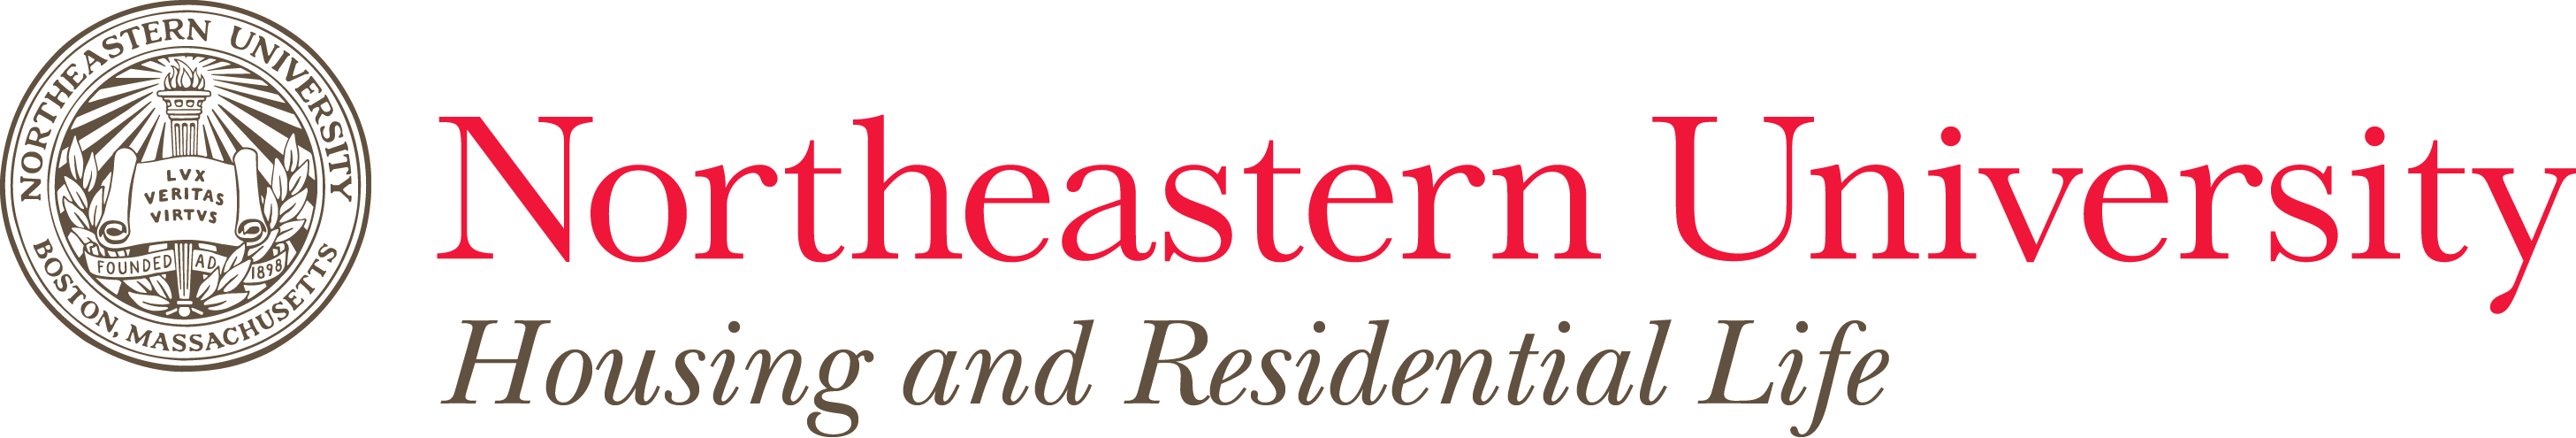 Housing reslife logo 2c